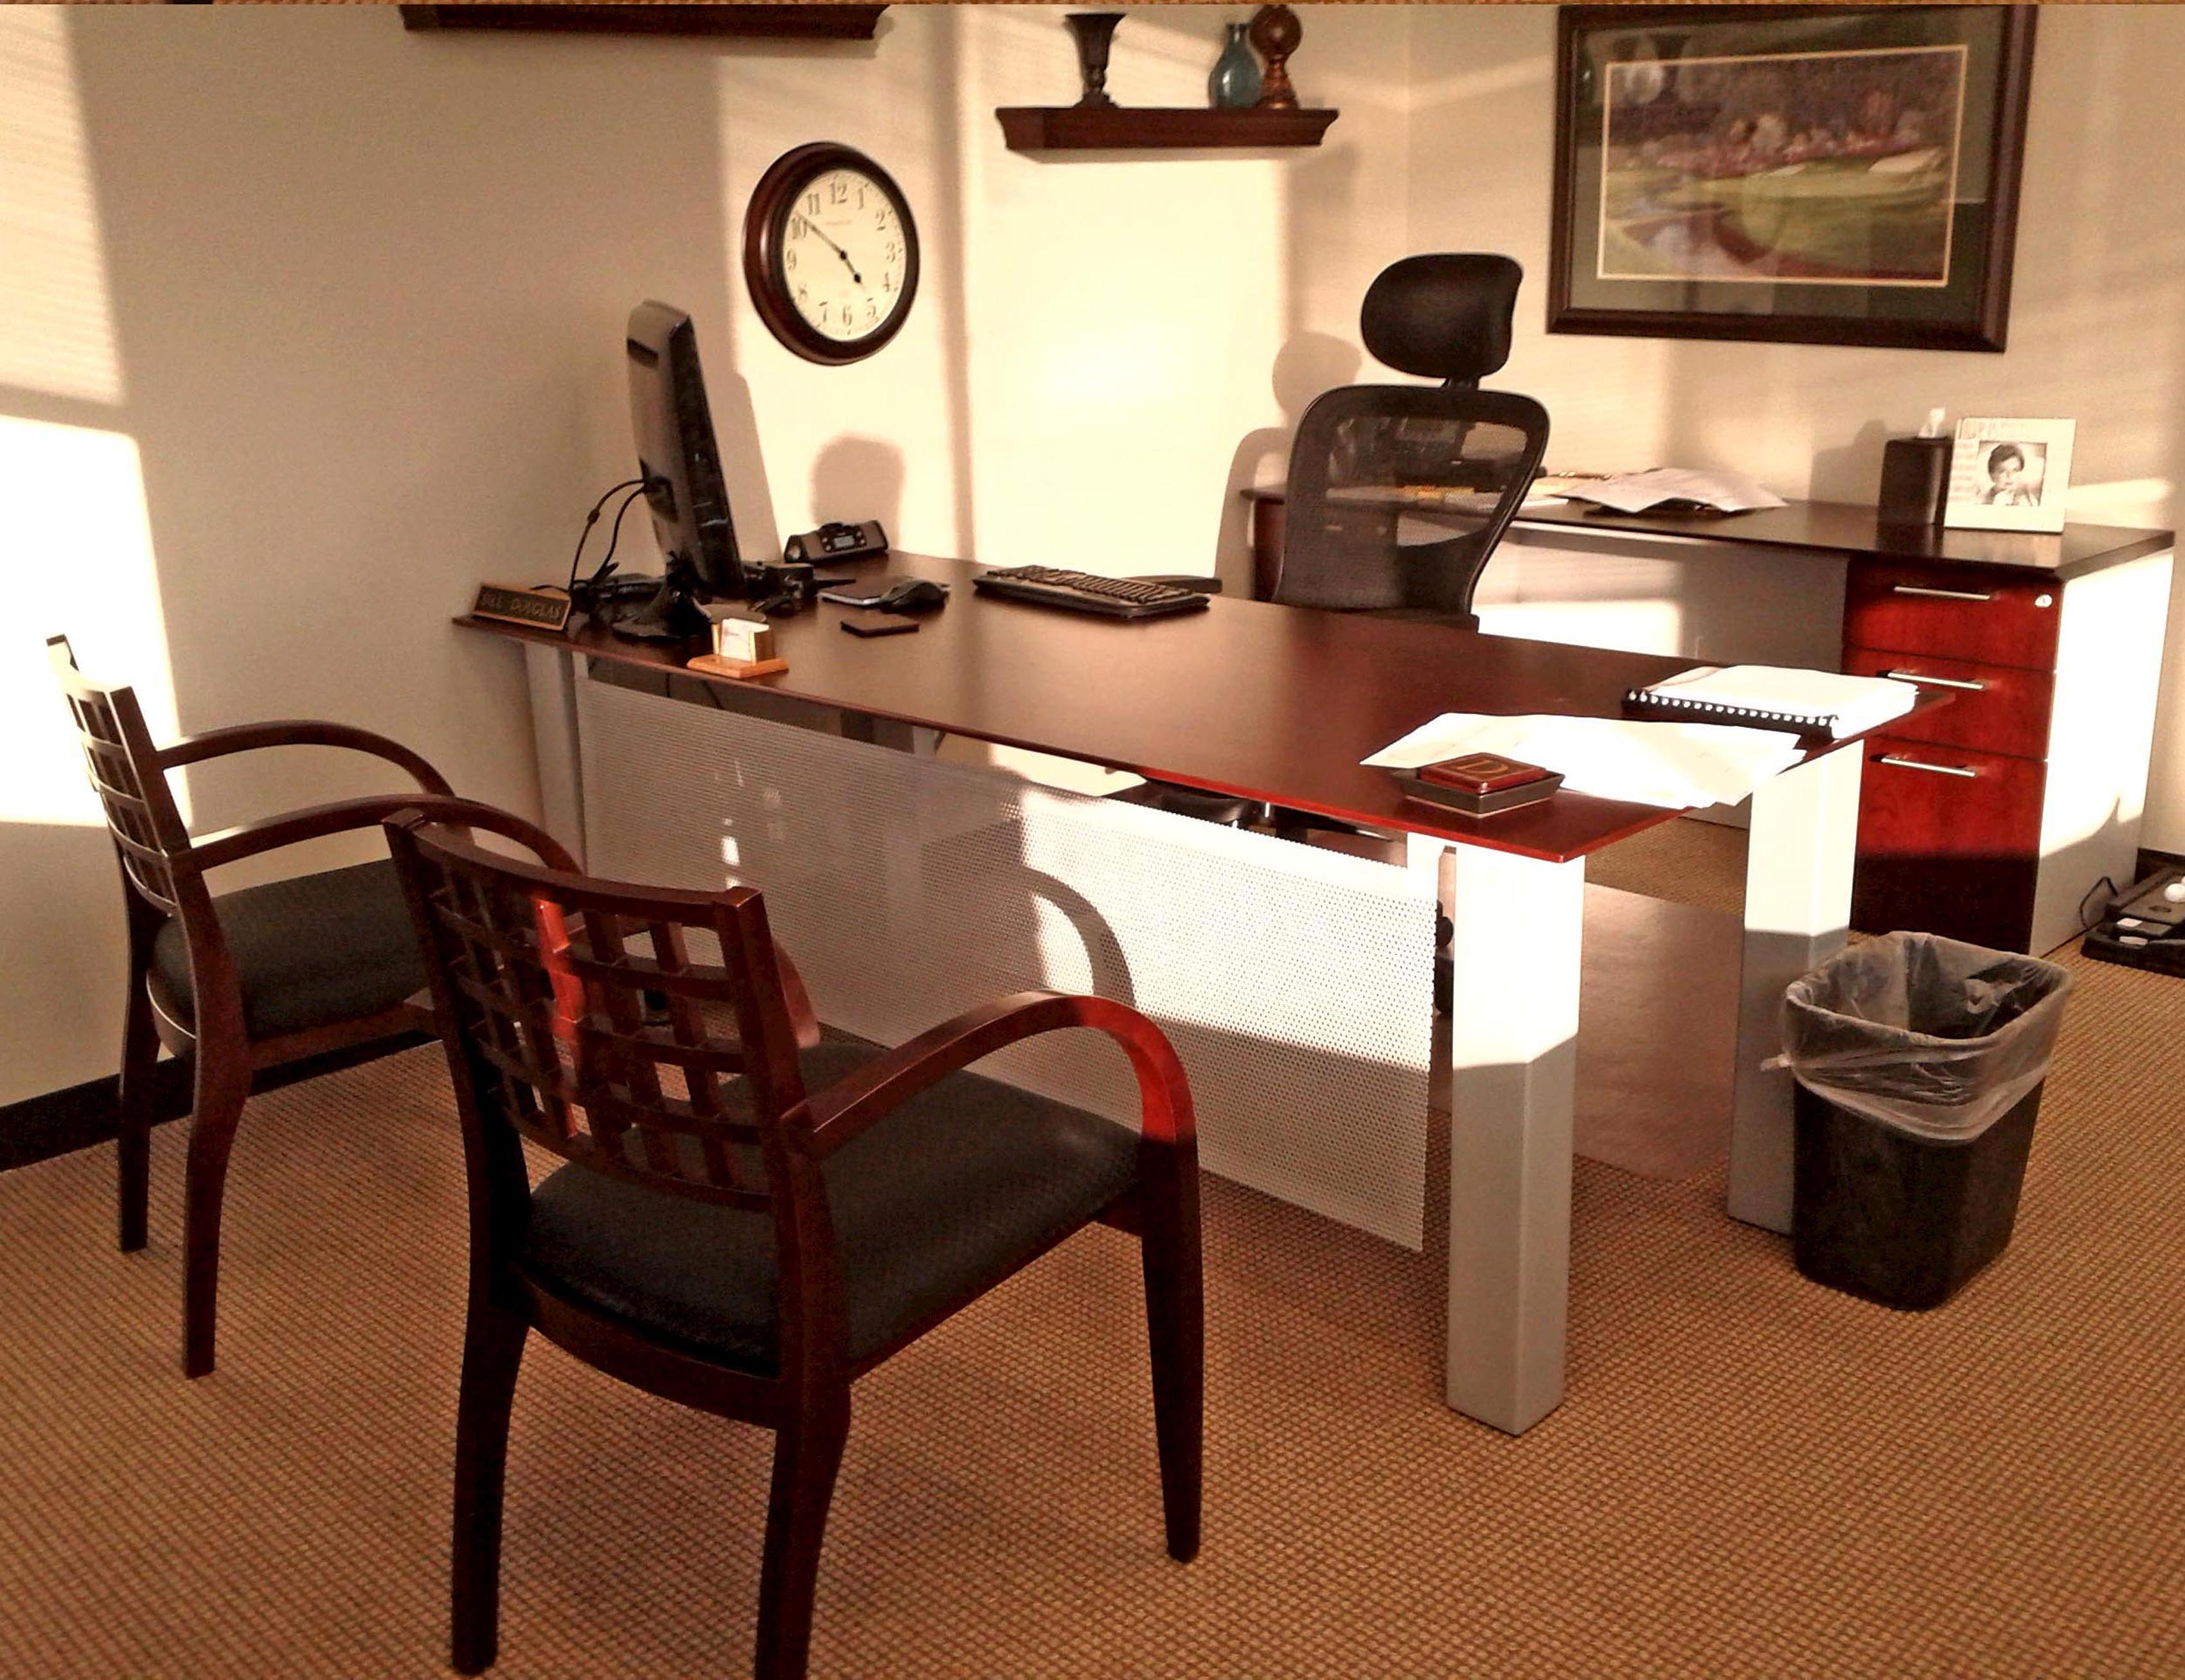 38 global office furniture houston 73 global office for K furniture houston